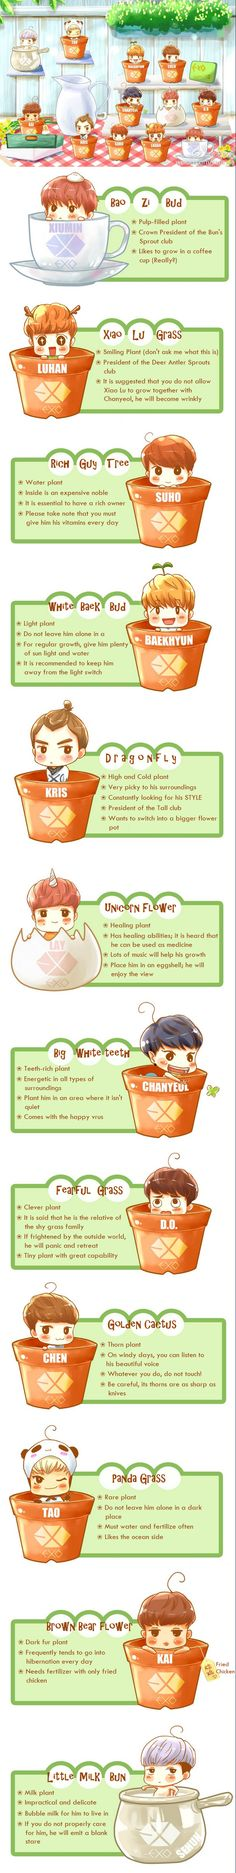 Exo as plants chibi